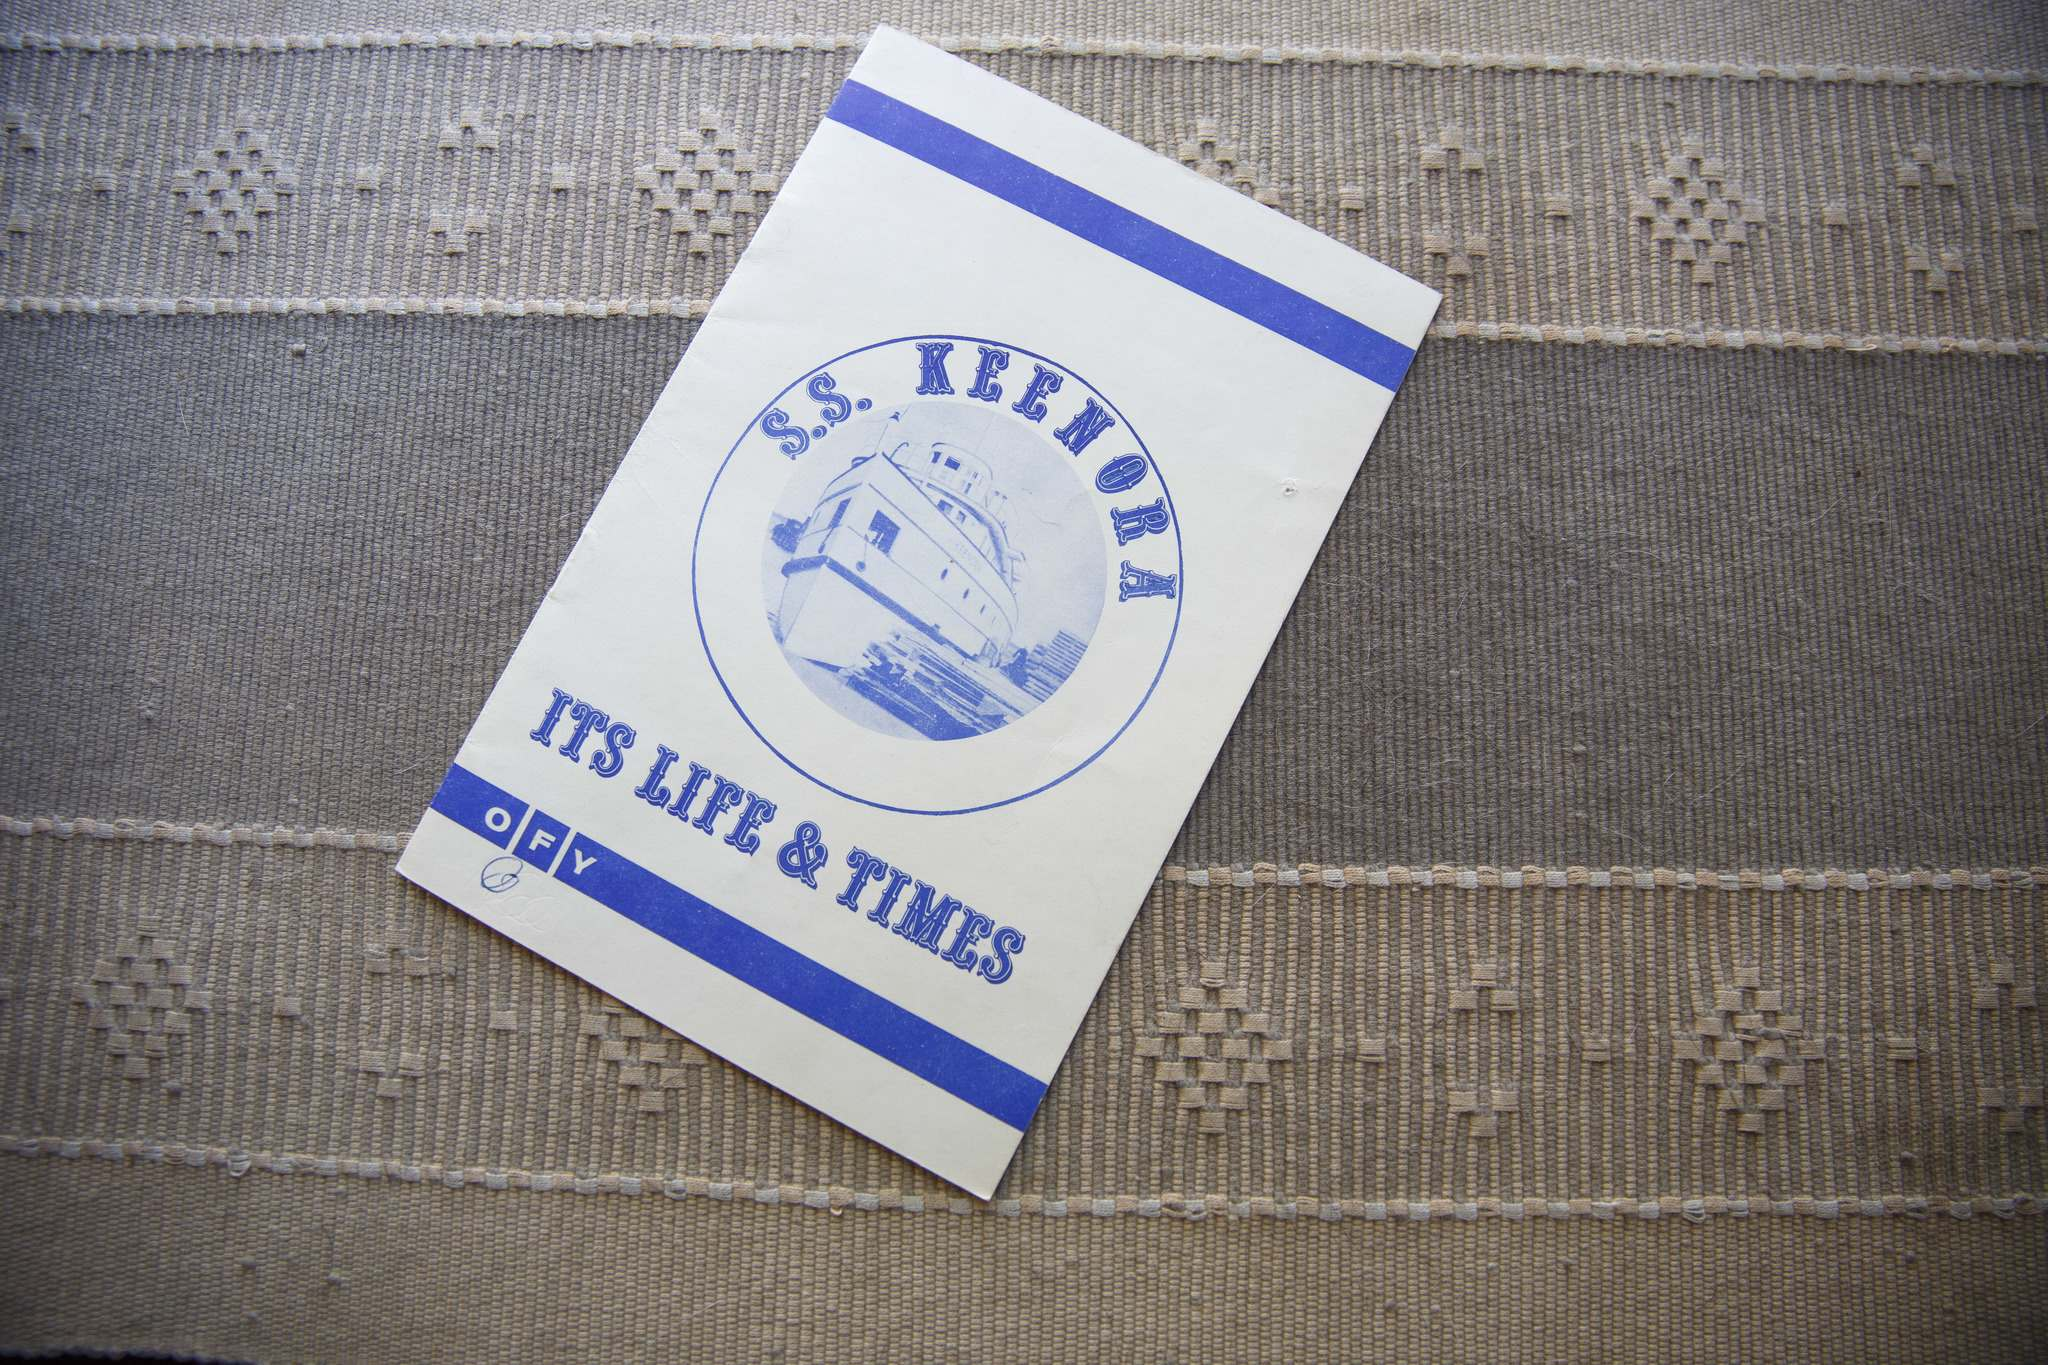 The S.S. Keenora booklet.